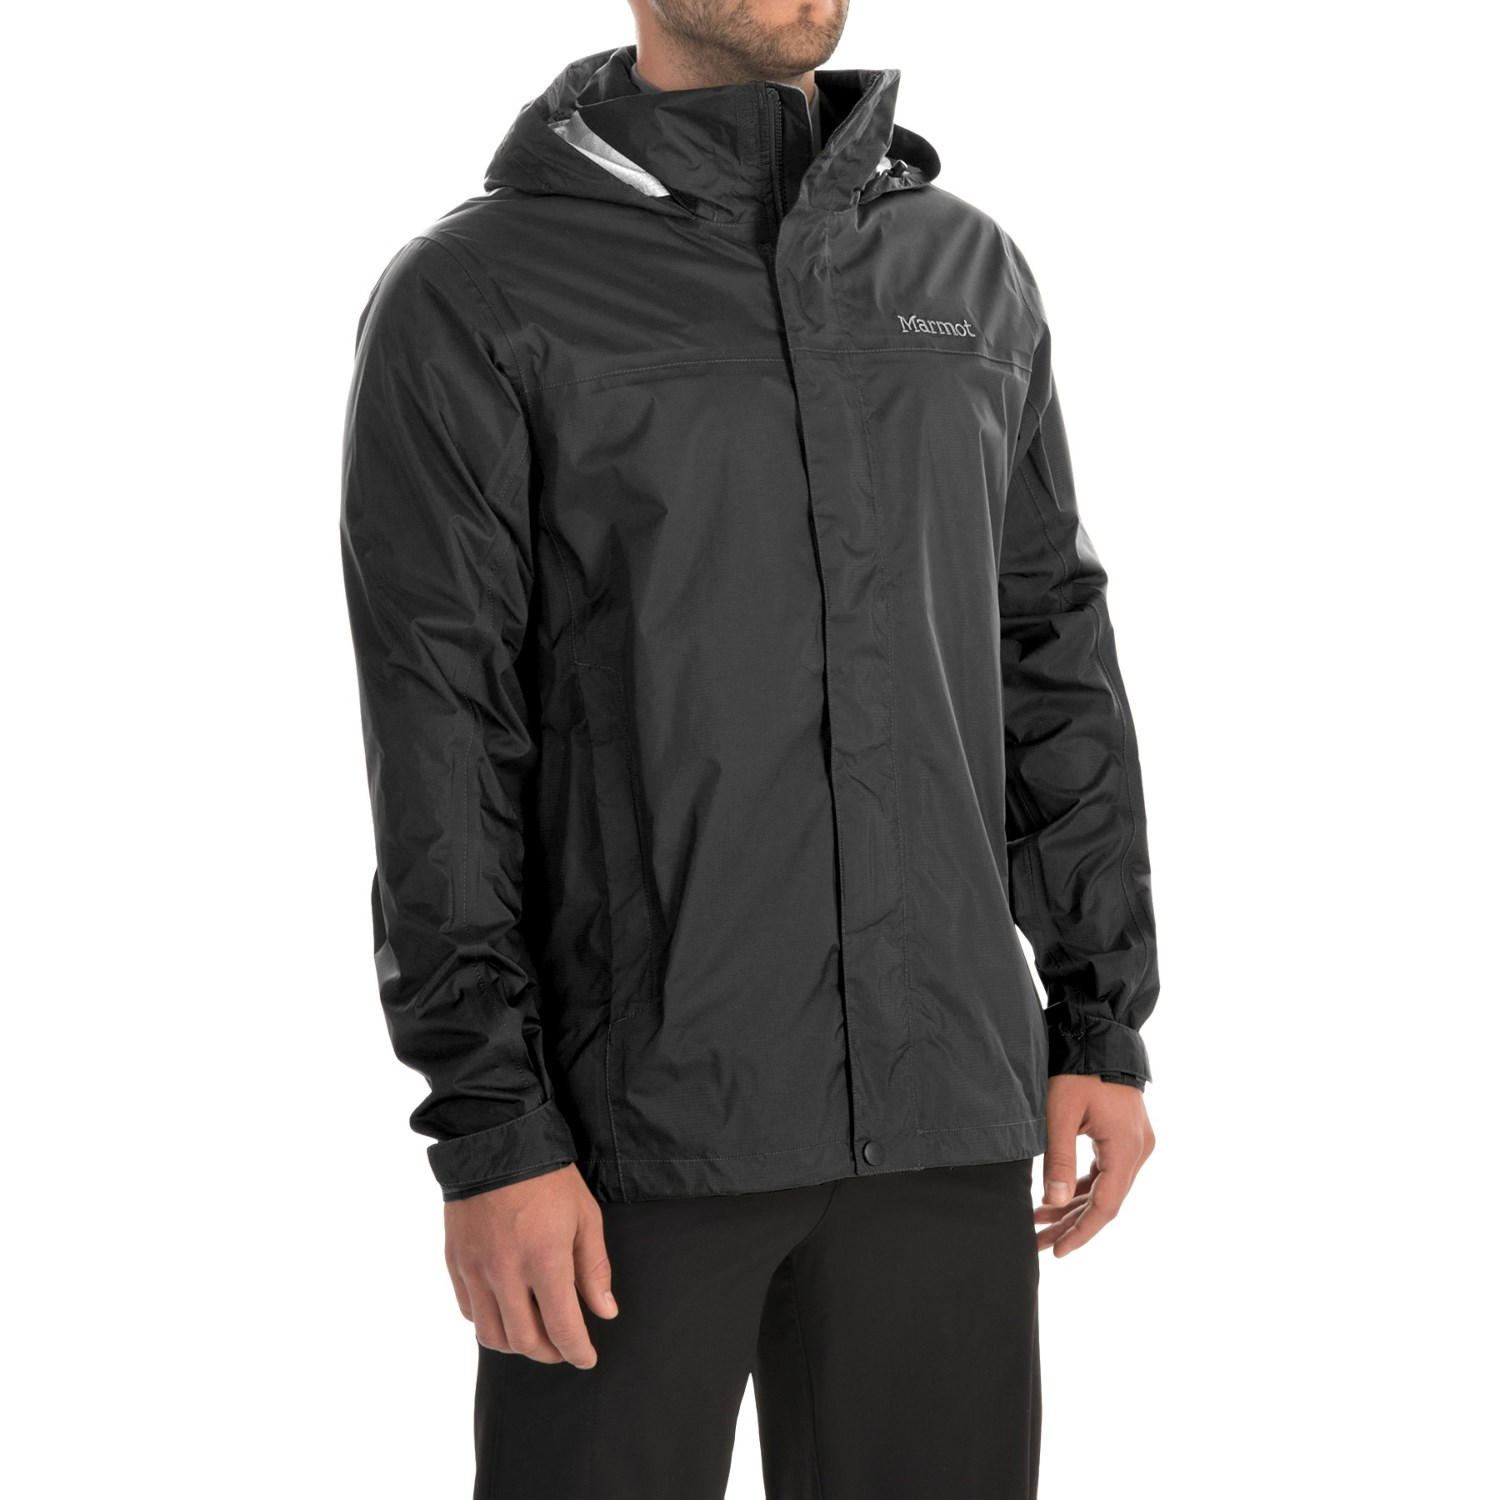 https://i.stpost.com/marmot-precip-jacket-waterpro...